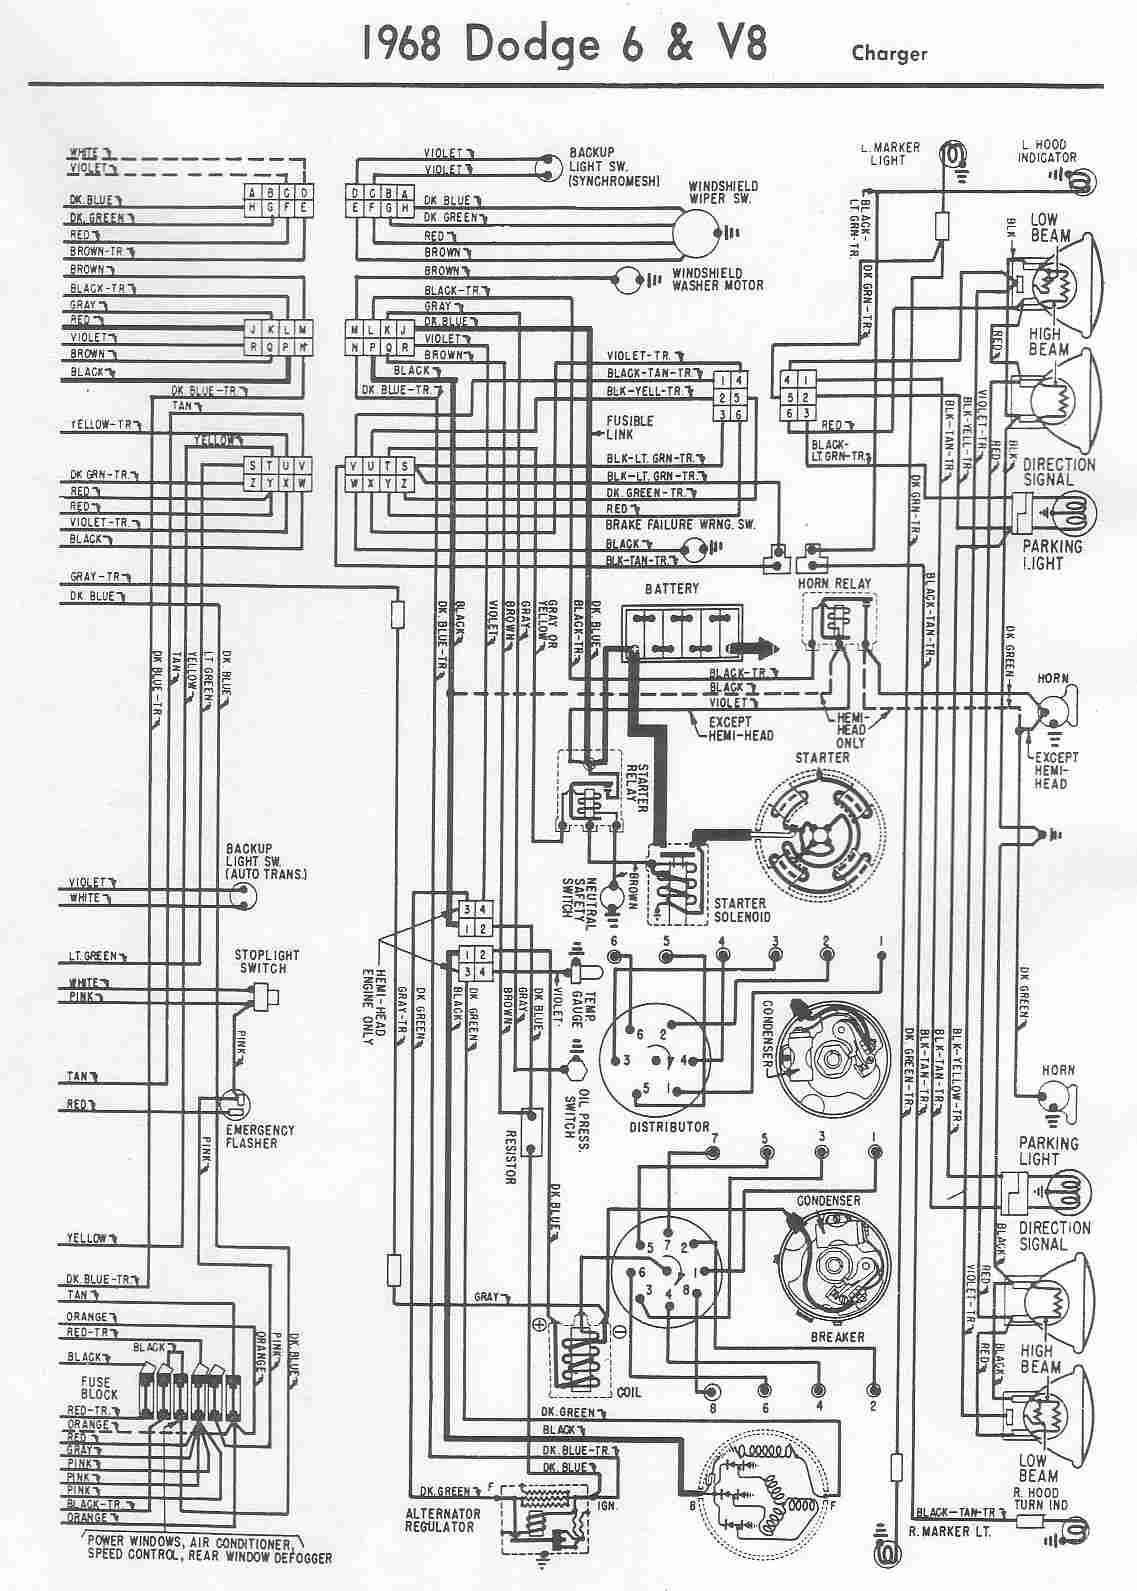 charger electrical wiring diagram of 1968 dodge 6 and v8?t=1508404771 dodge car manuals, wiring diagrams pdf & fault codes 1970 dodge coronet wiring diagram at readyjetset.co